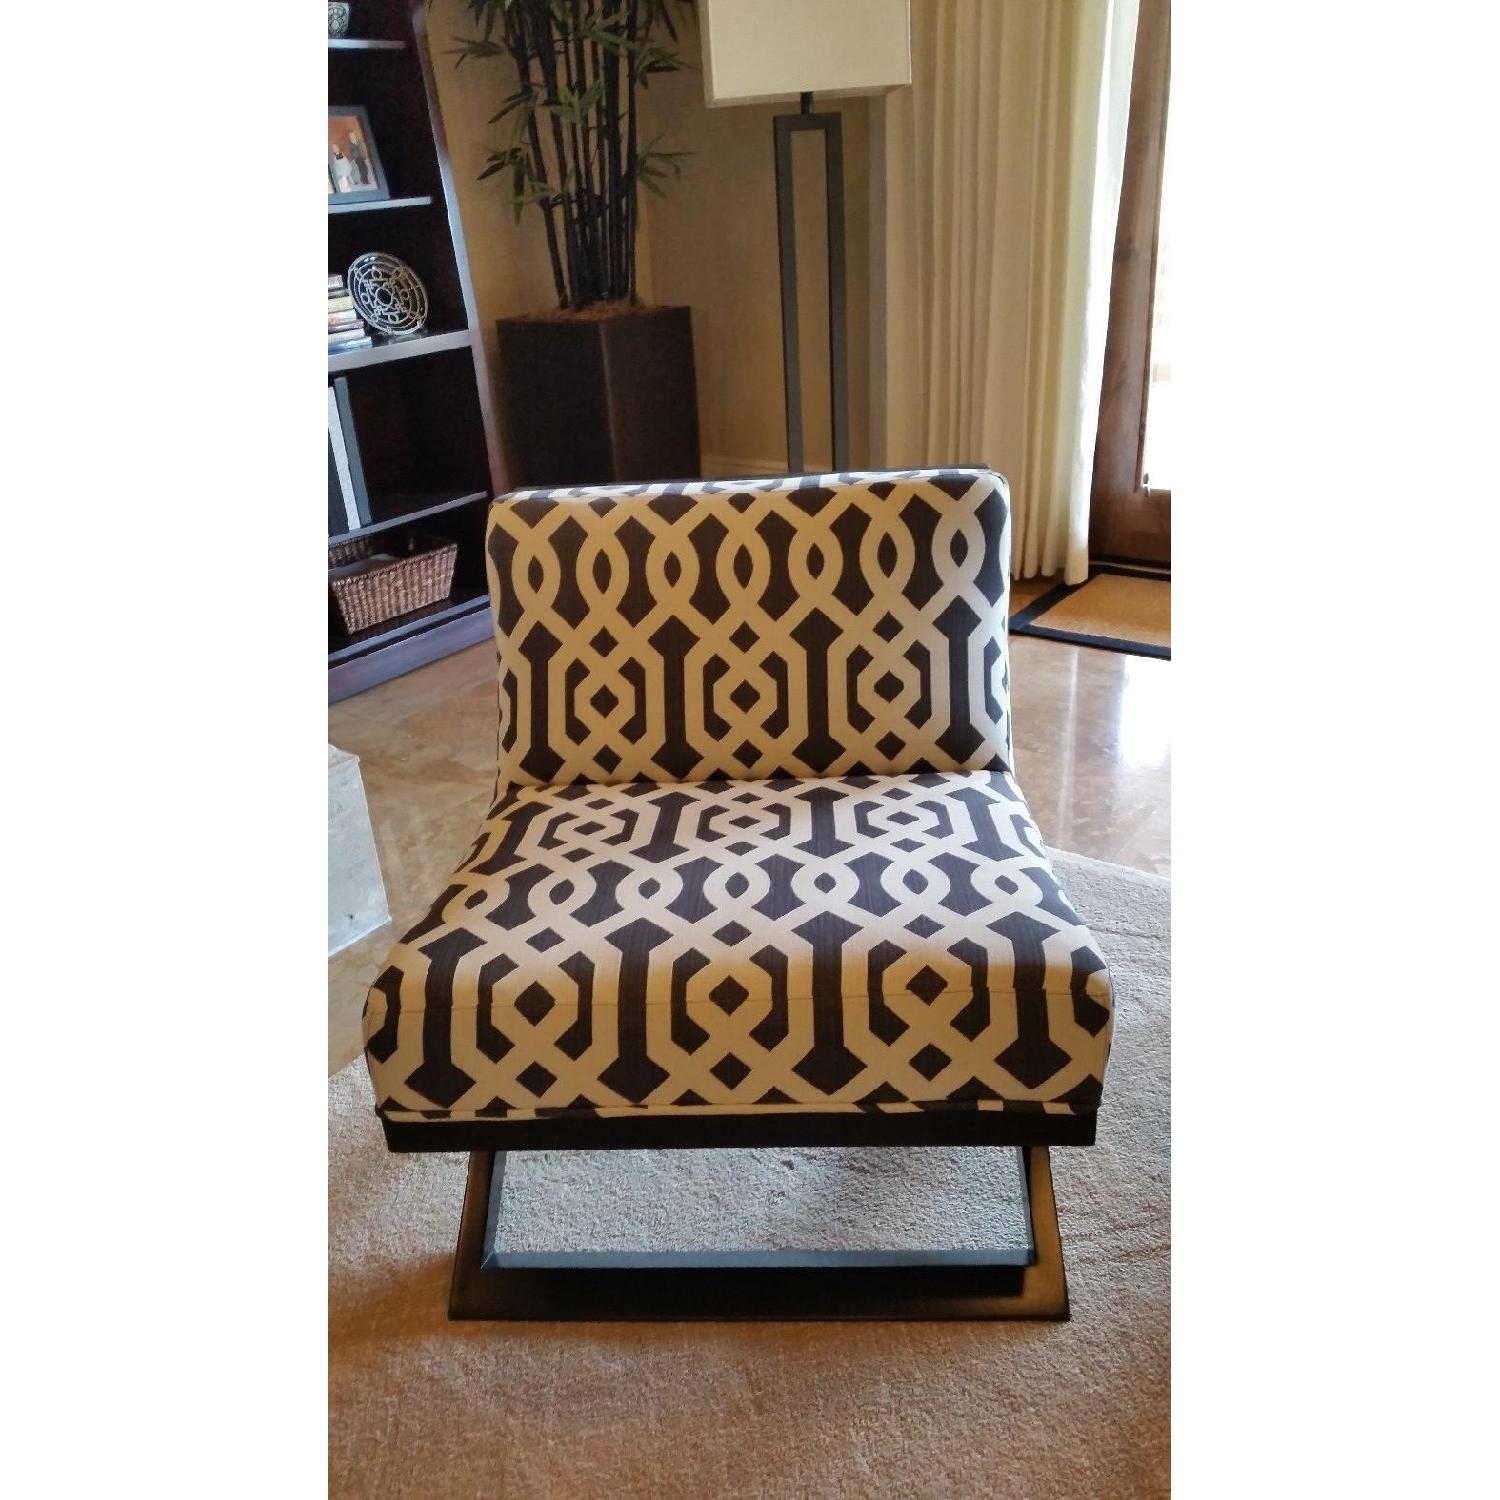 American Leather Black & White Modern Accent Chairs - image-2